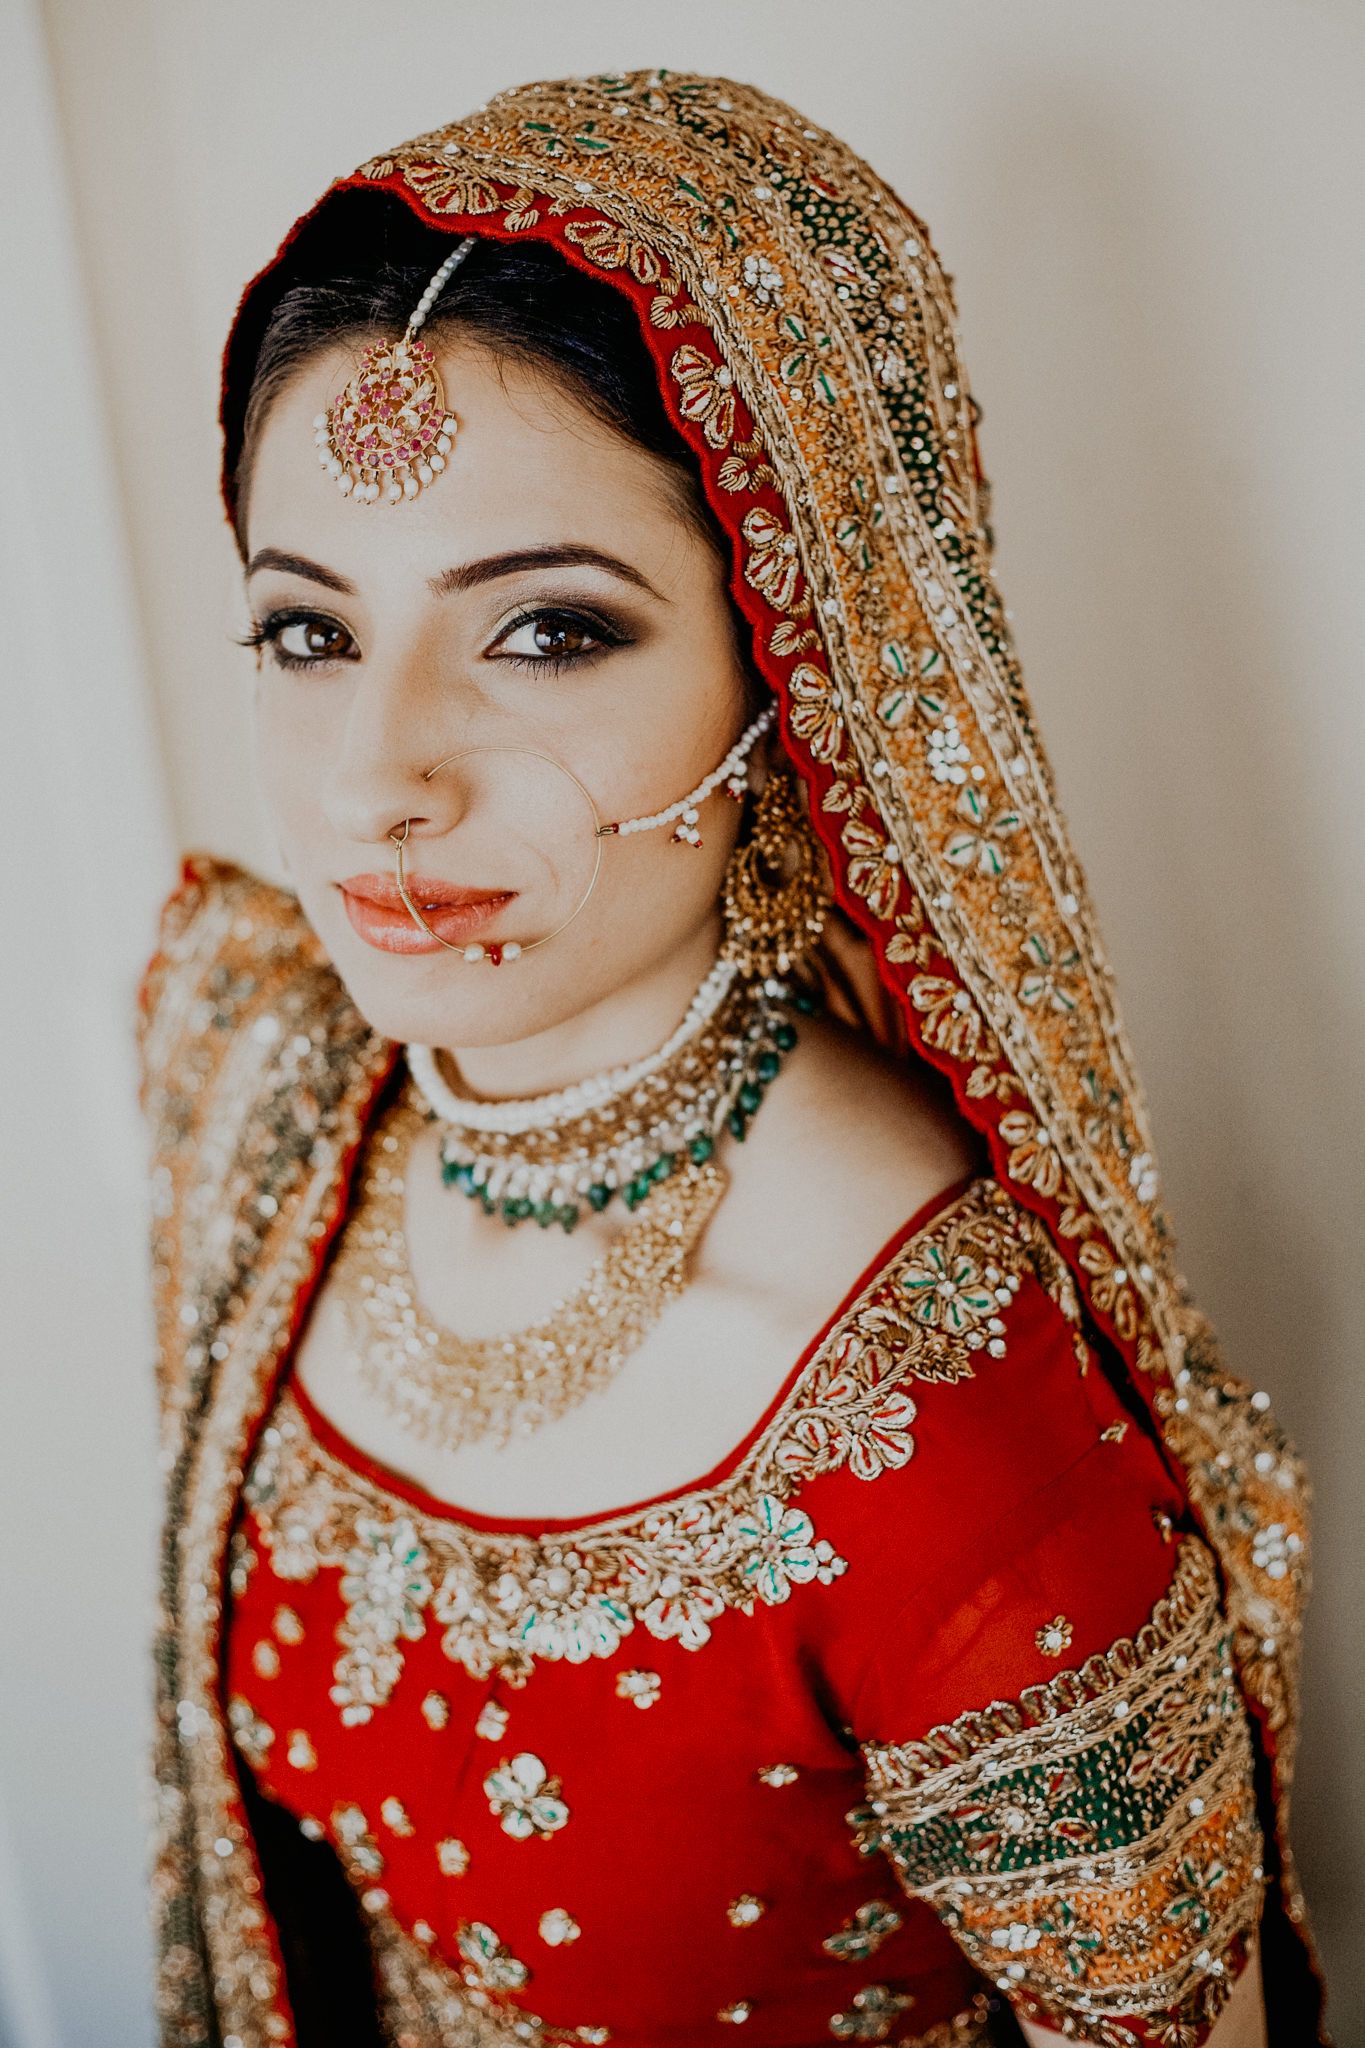 Portrait of Indian bride in red and gold dress